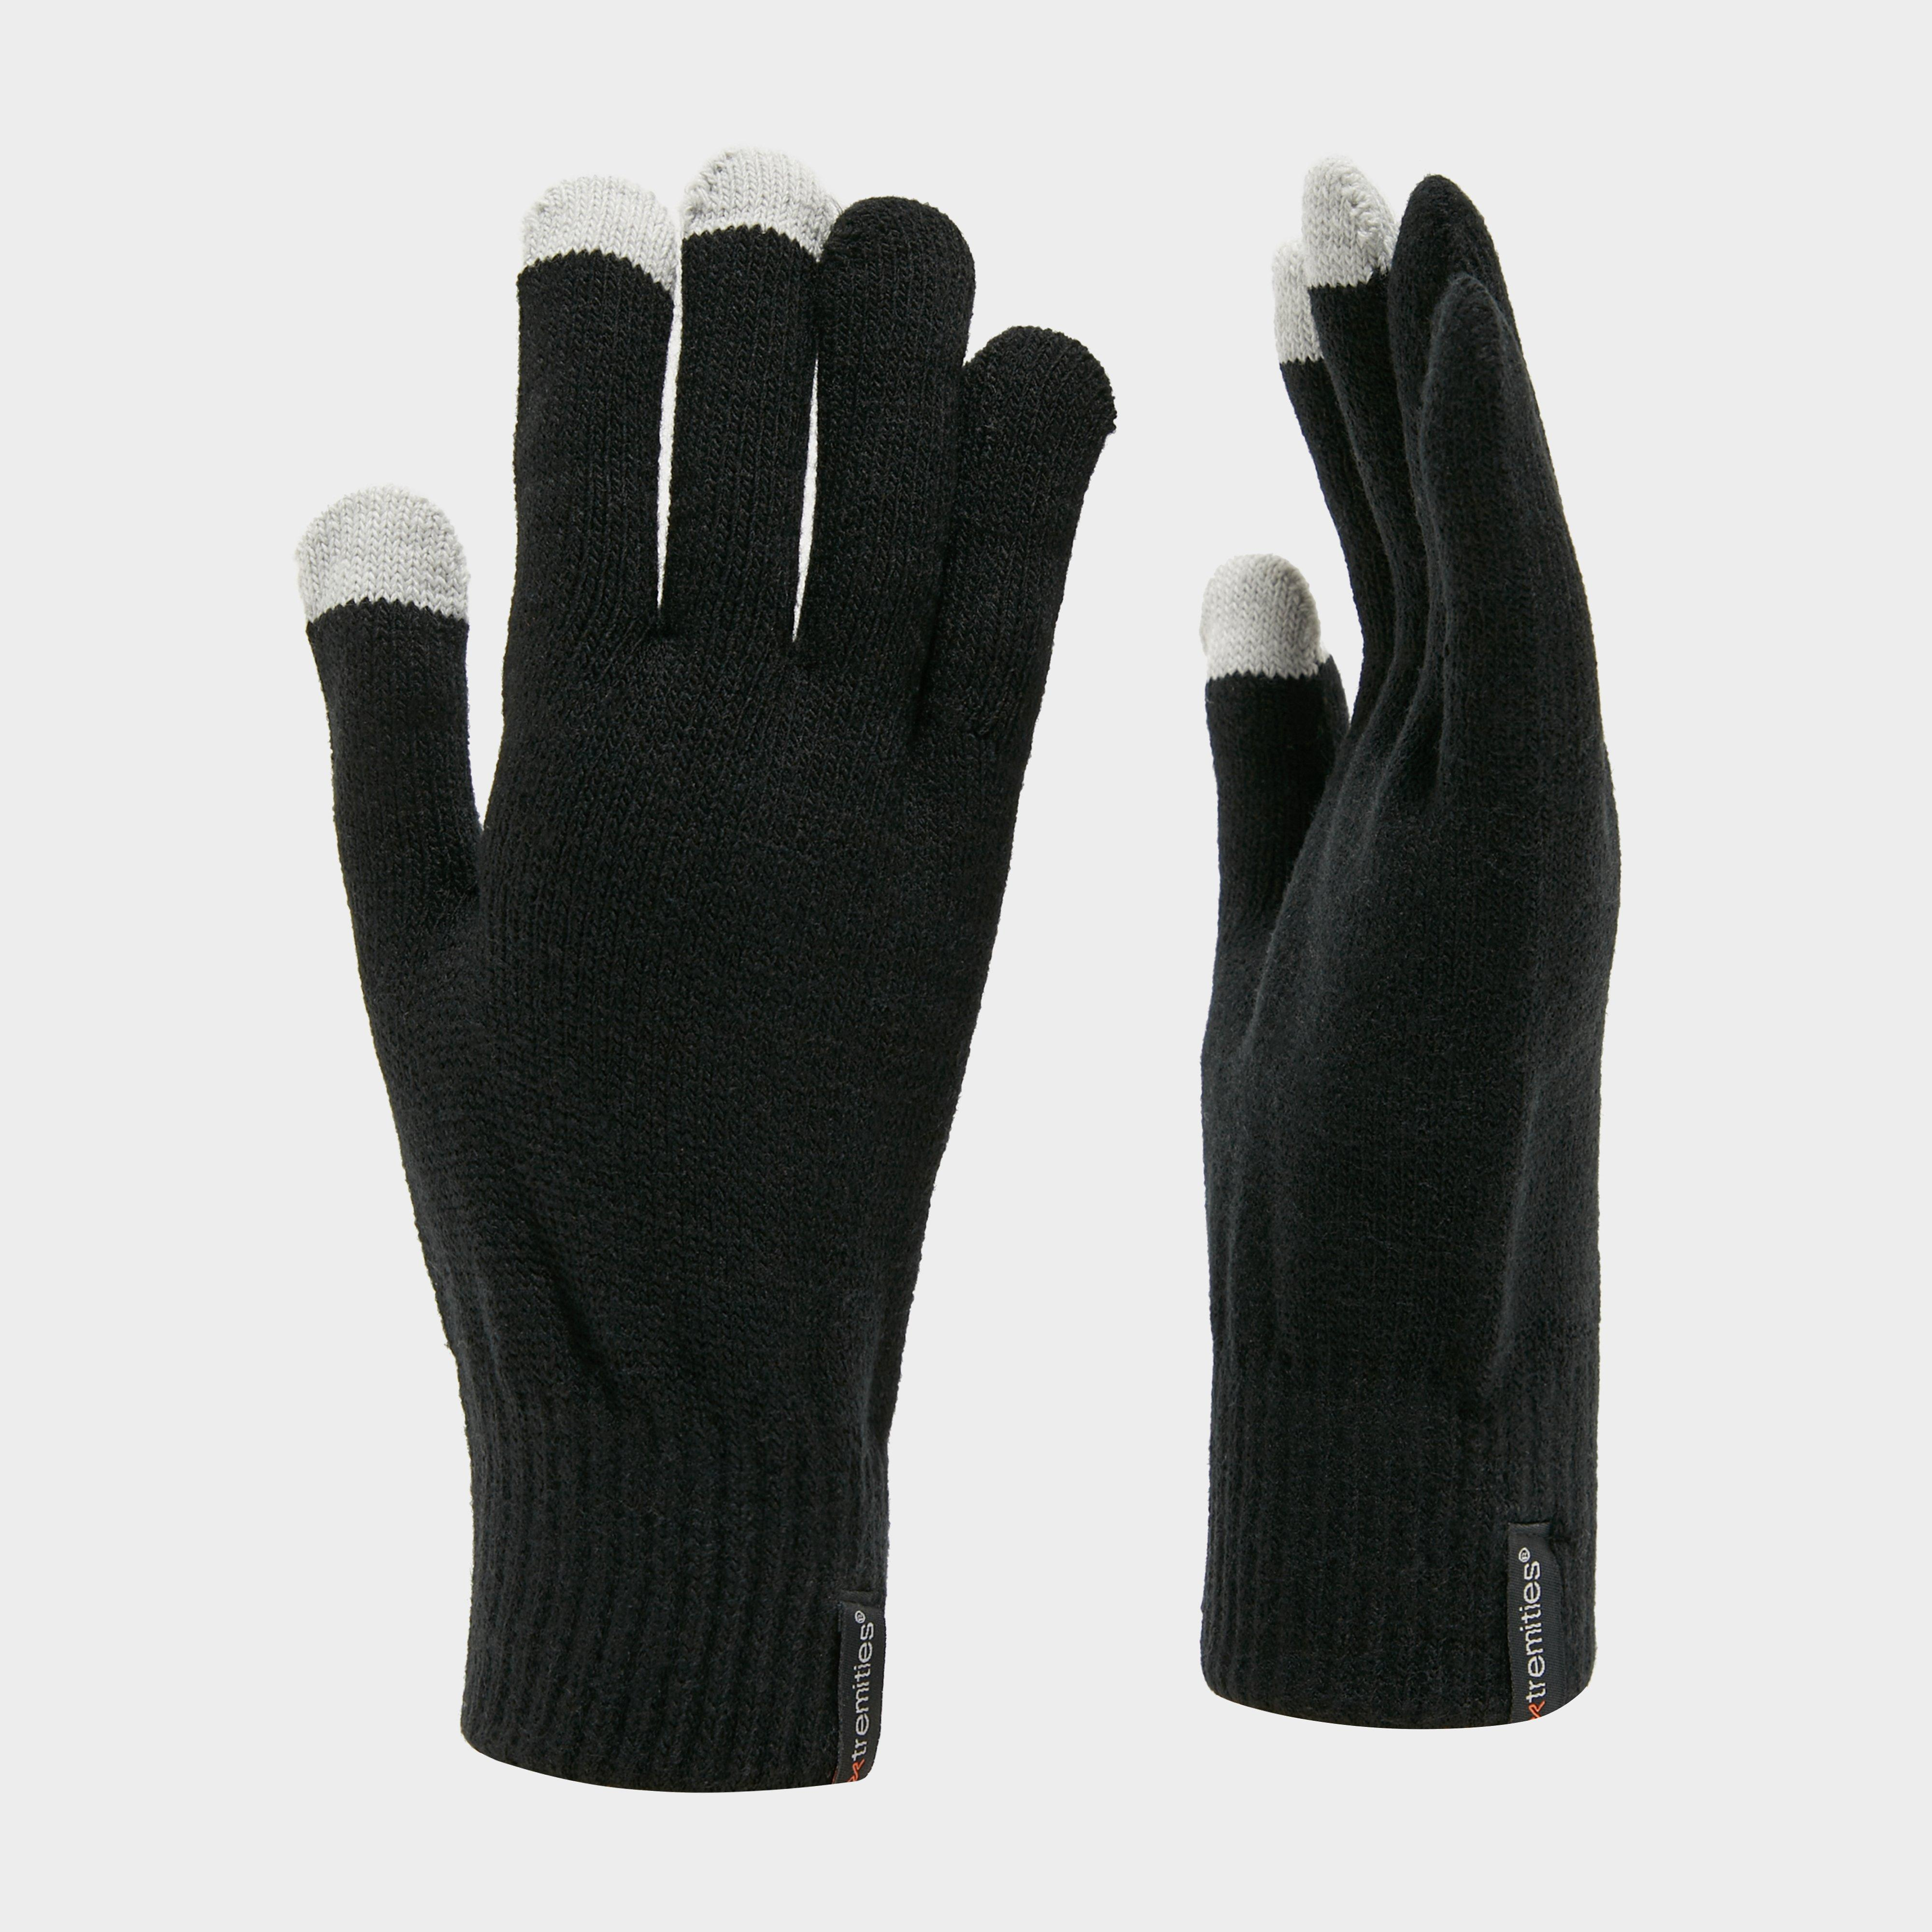 Extremities Extremities Thinny Touch Glove - Black, Black